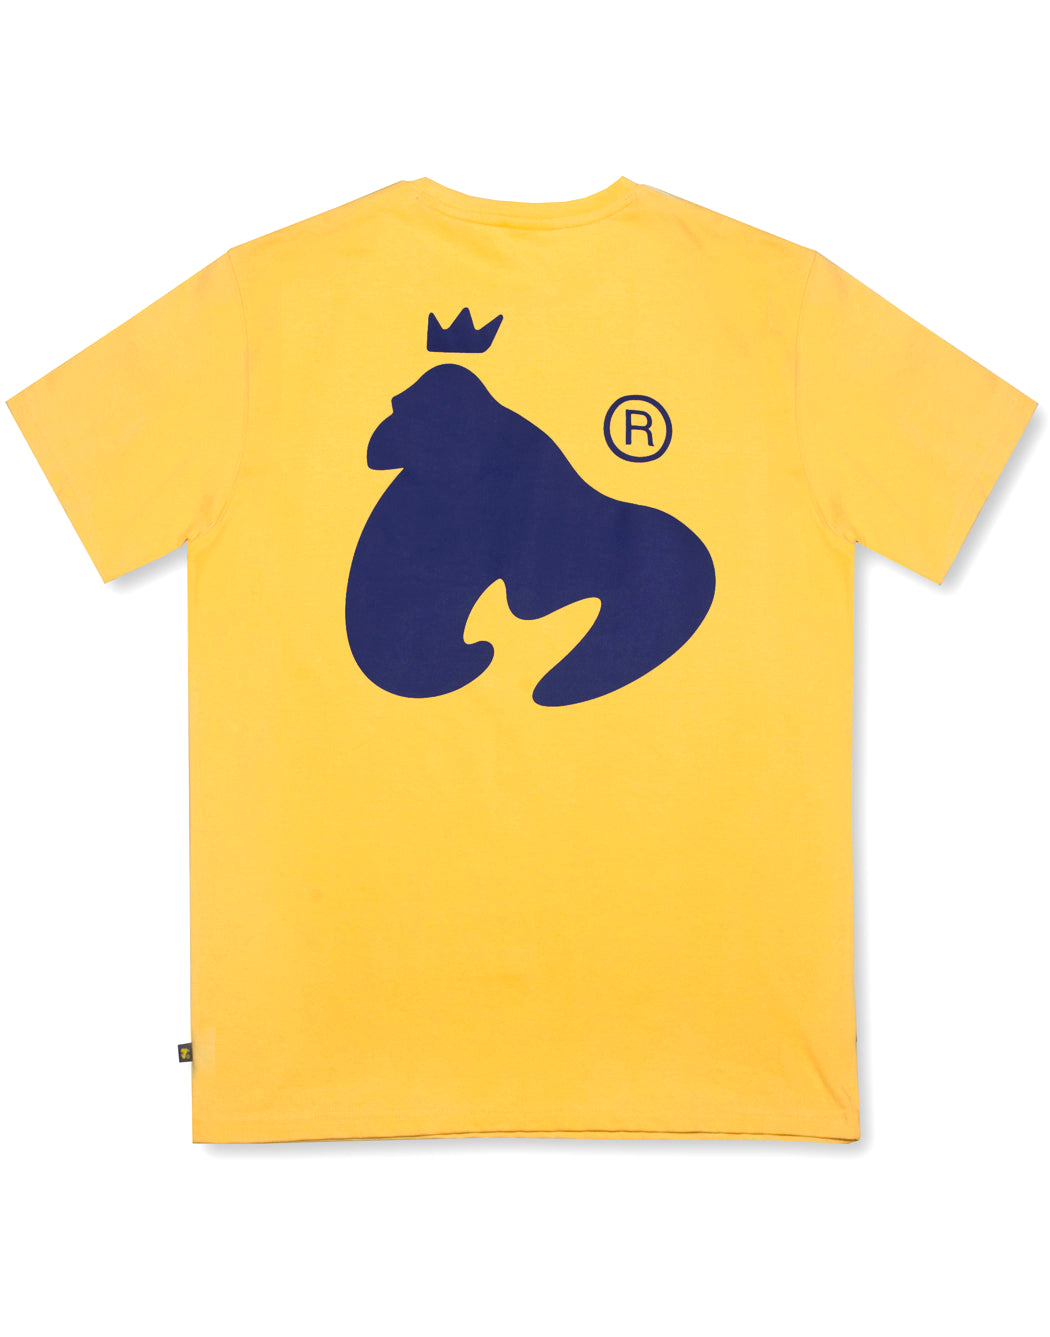 Money Clothing Signature Ape t-shirt in yellow